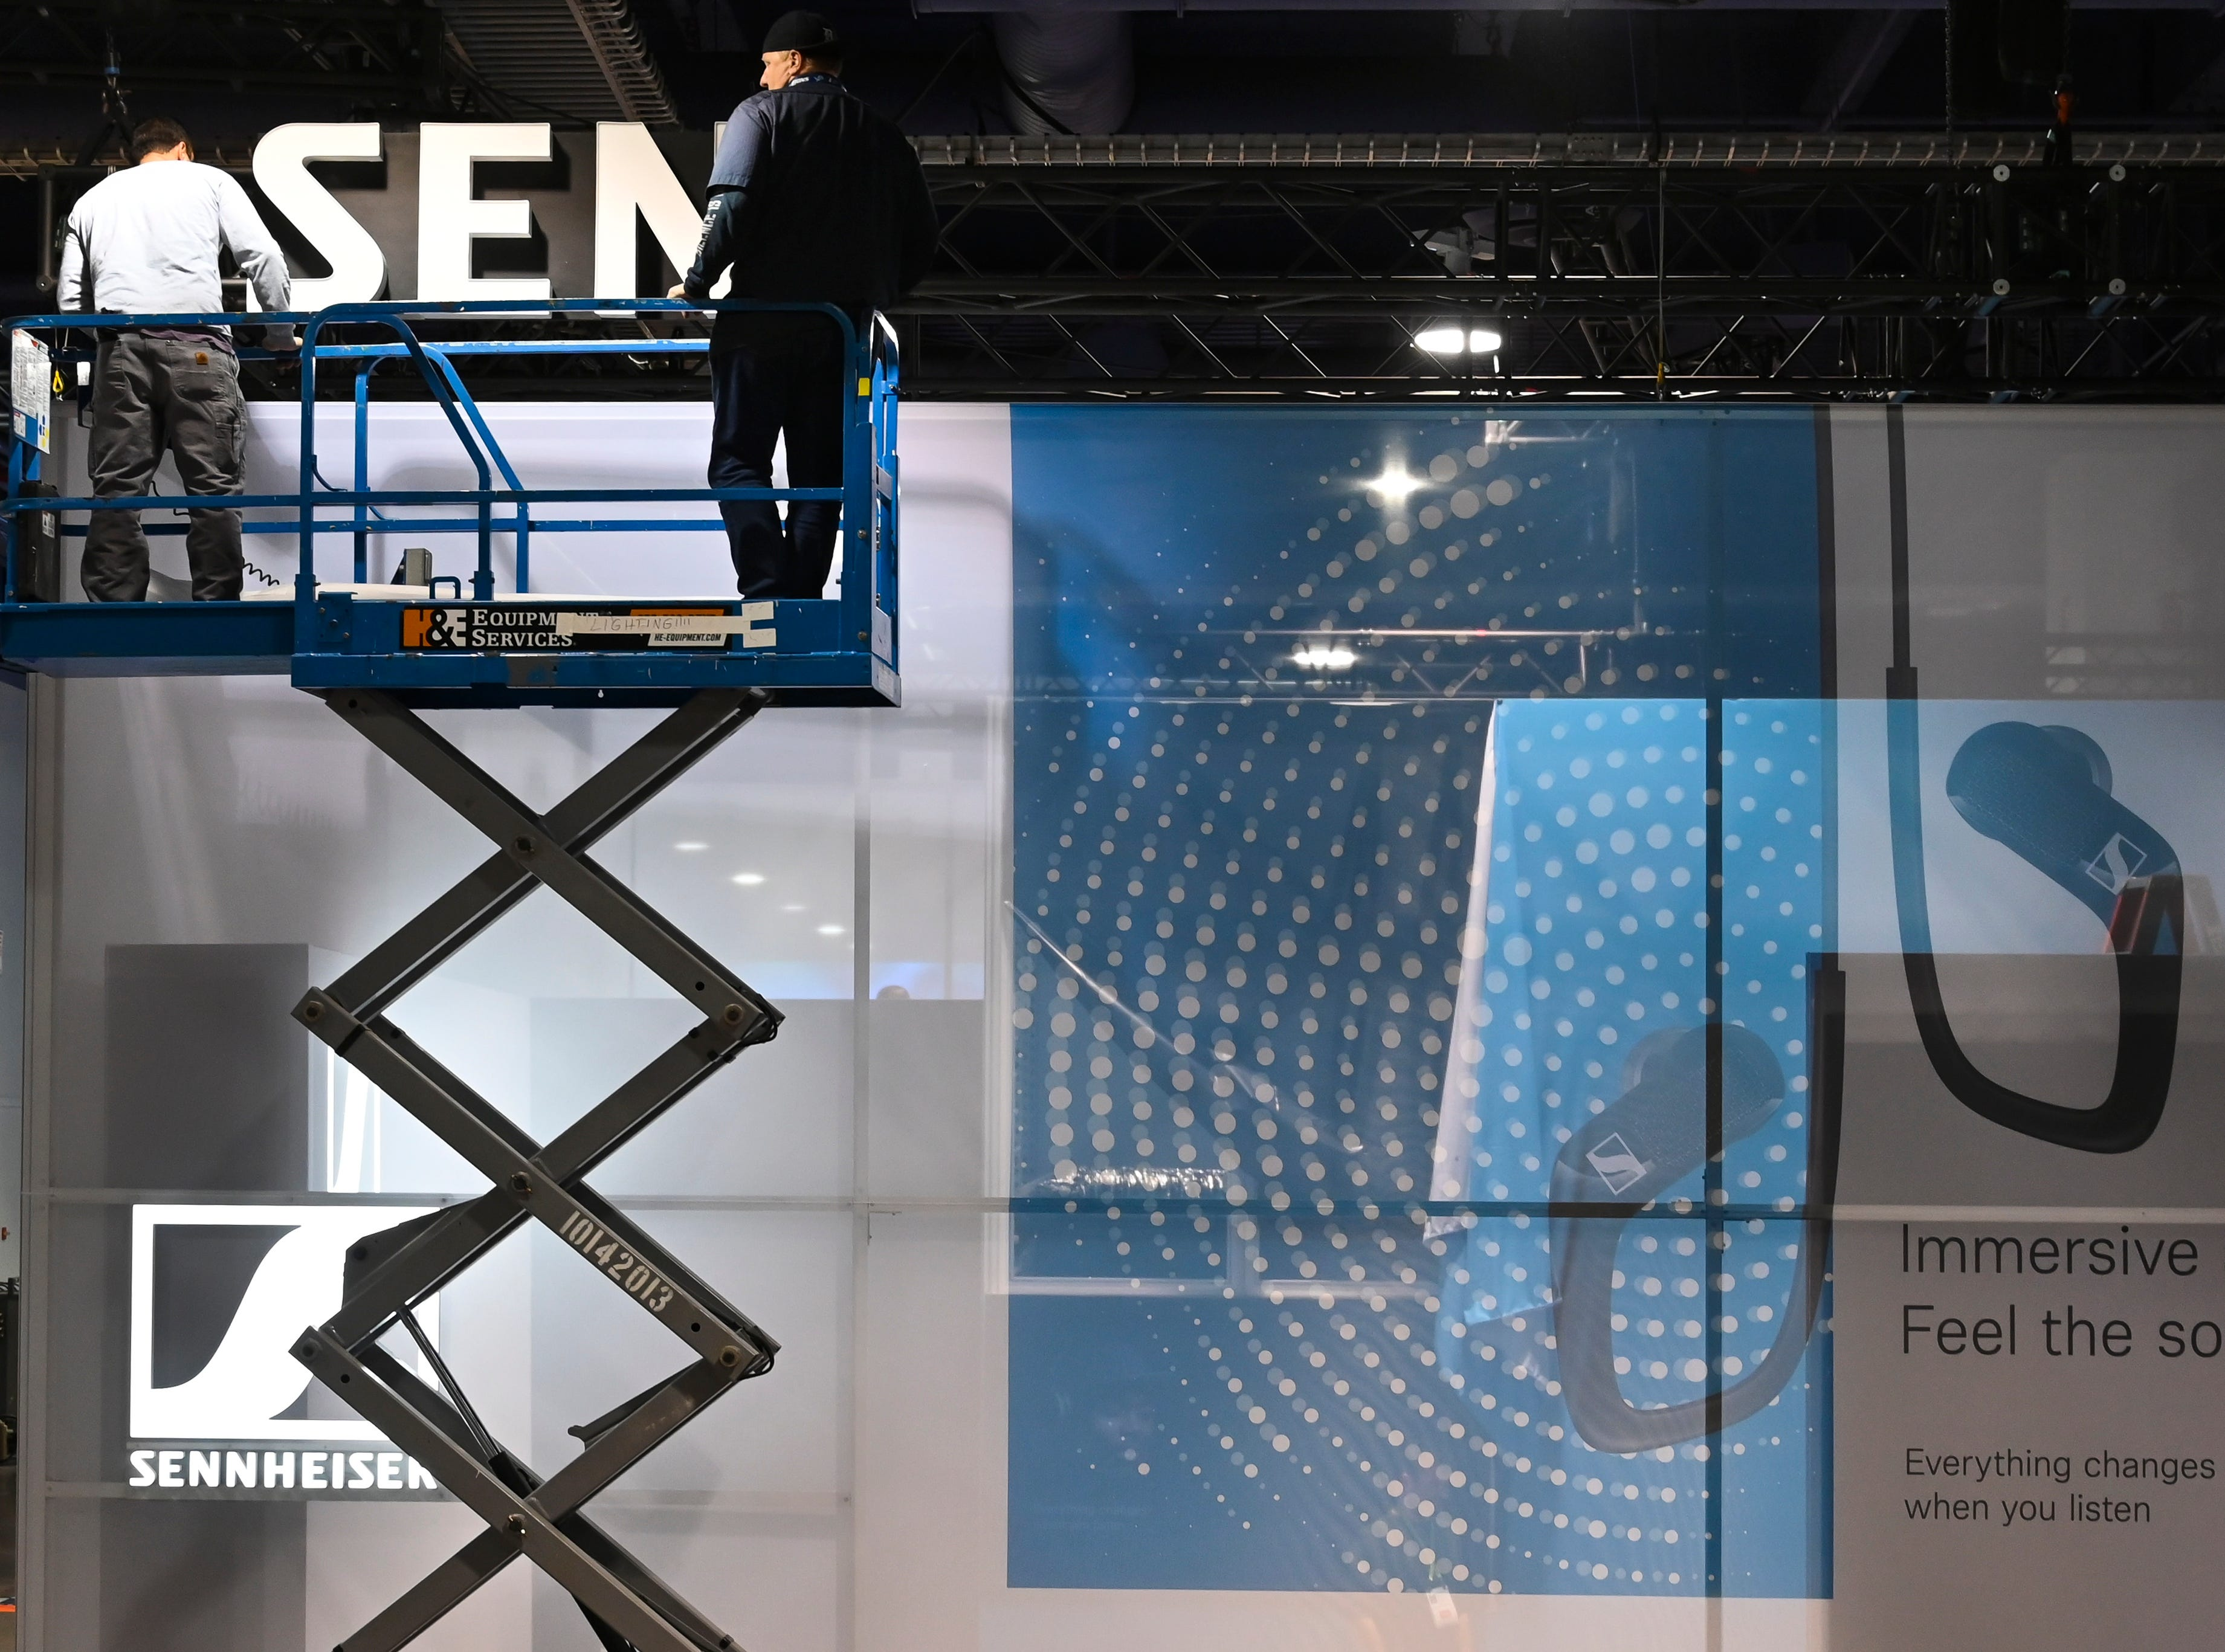 A work crew constructs the Sennheiser display in the South Hall of the Las Vegas Convention Center.